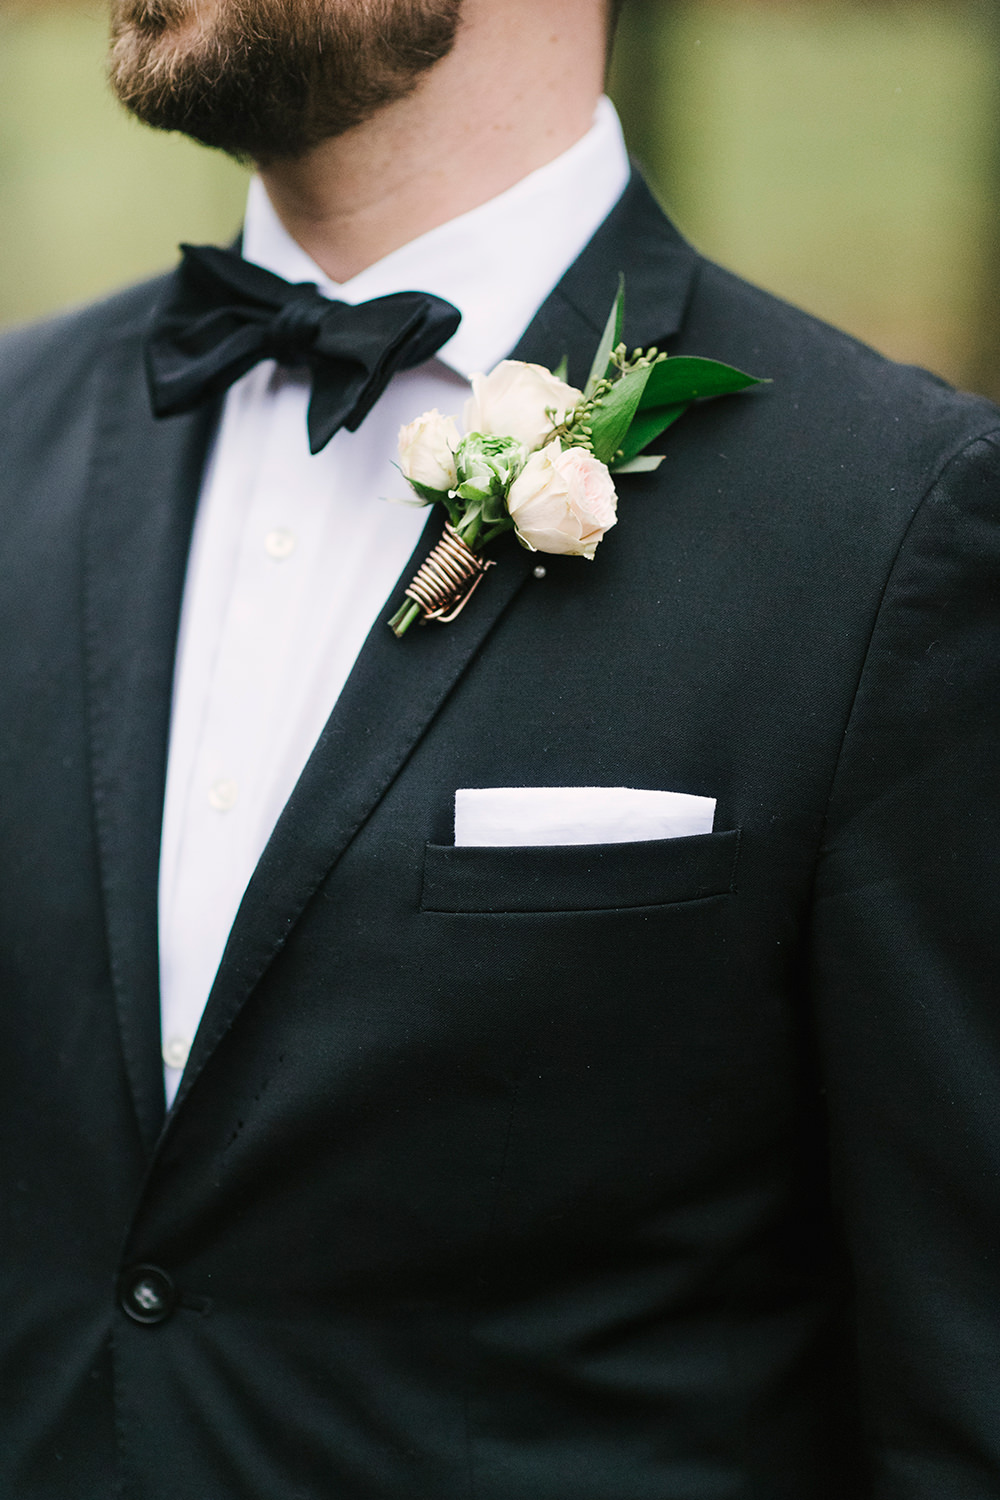 groom boutonnieres - photo by Alicia King Photography http://ruffledblog.com/upstate-new-york-wedding-ideas-with-copper